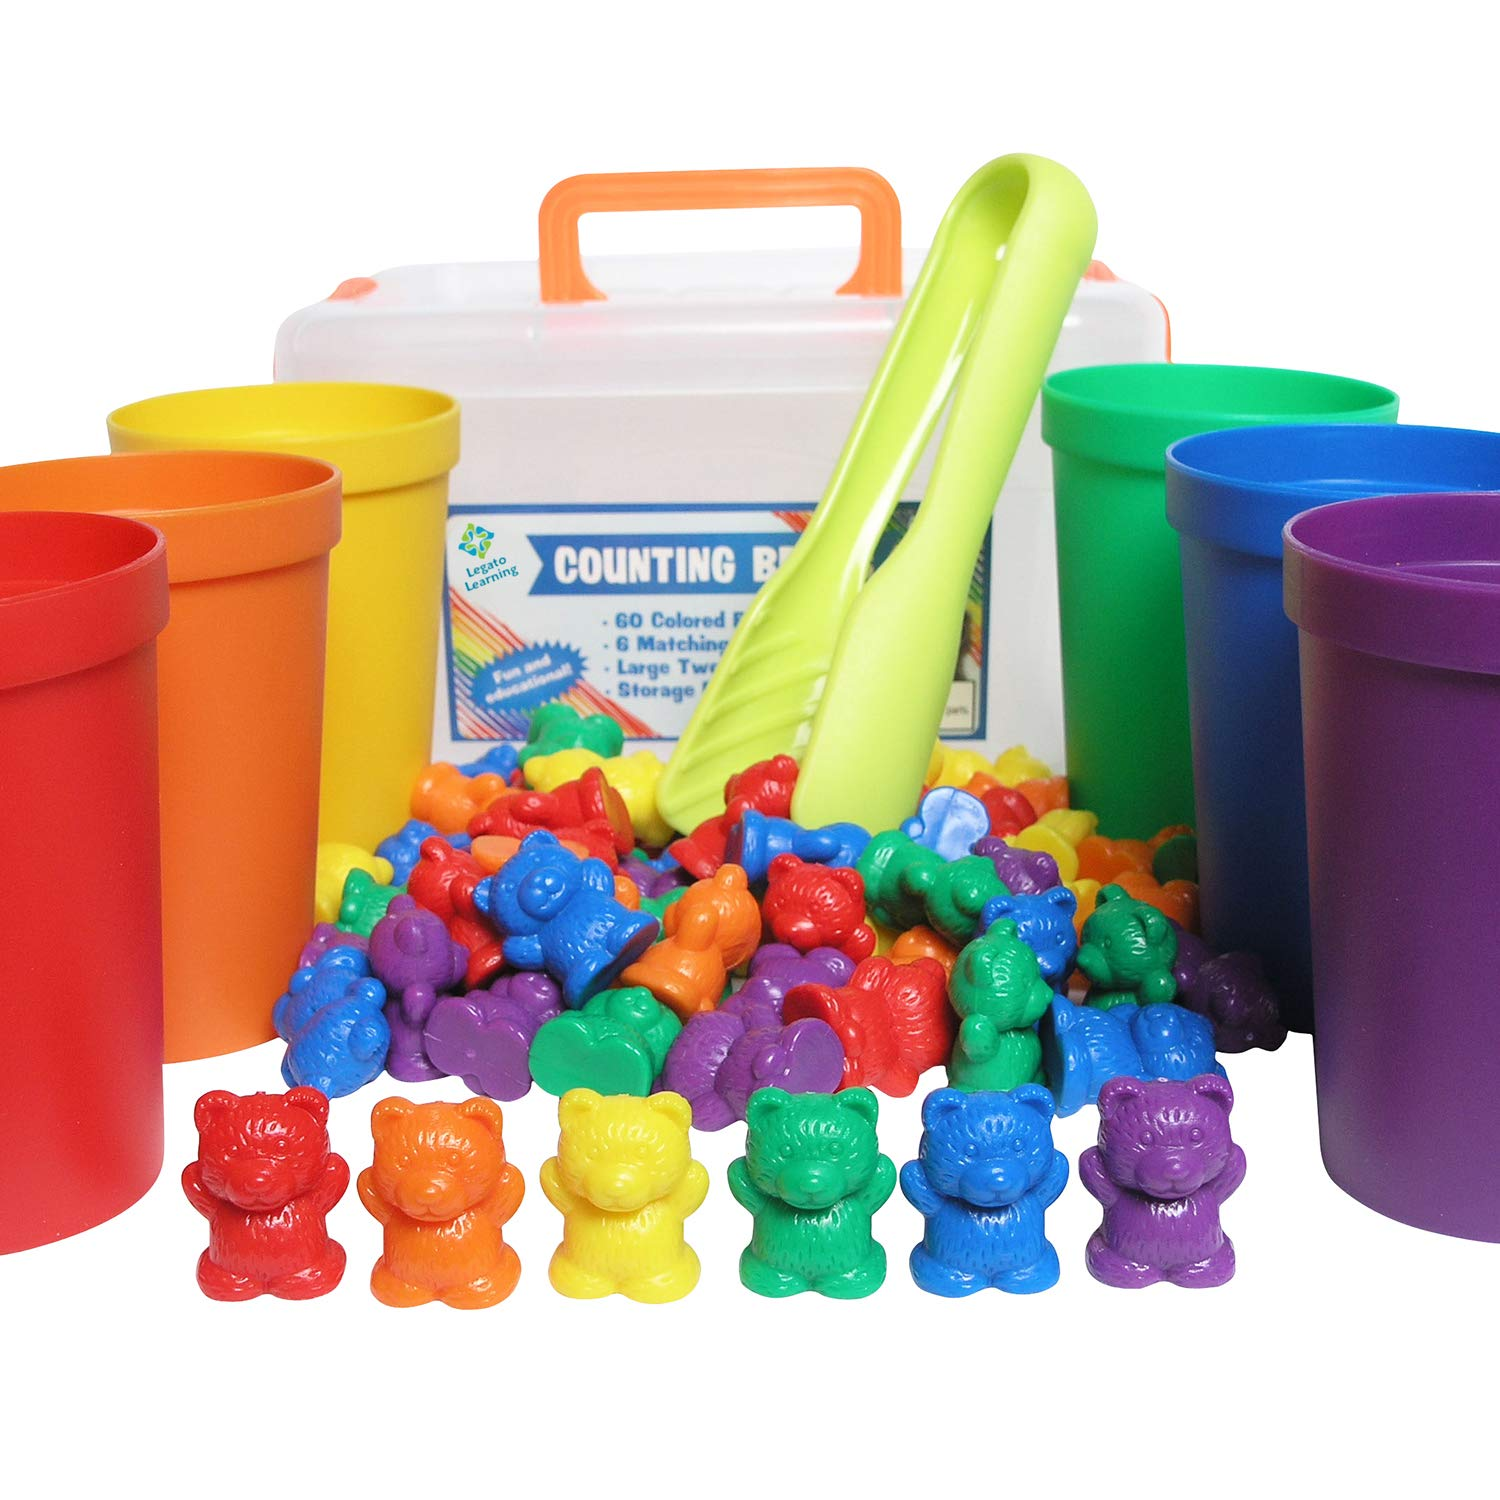 Legato Counting/Sorting Bears; 60 Rainbow Colored Bears, 6 Stacking Cups, Kids Tweezers, Storage Container, and Activity eBook. Quality Educational Toy, Good for STEM and Montessori Programs. by Legato Learning